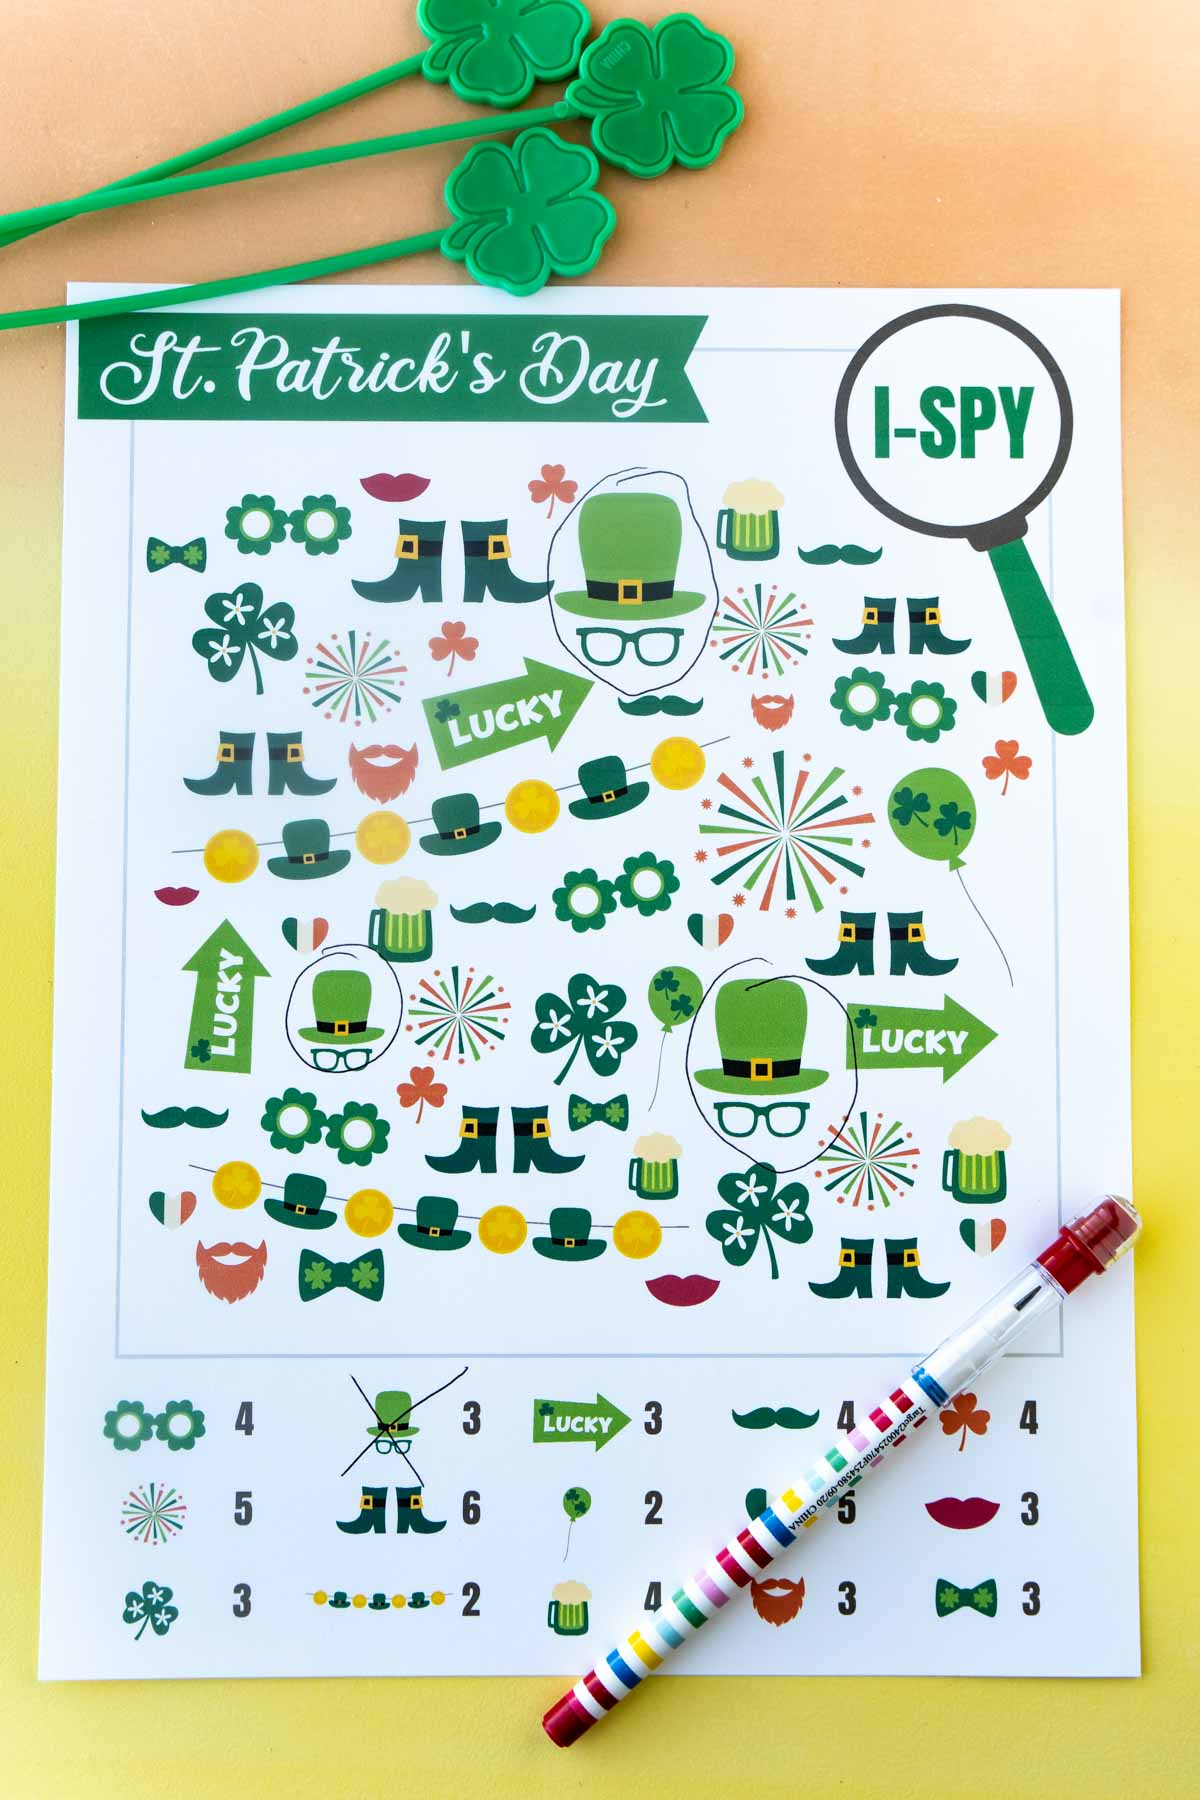 St. Patrick's Day i-spy page with items circled